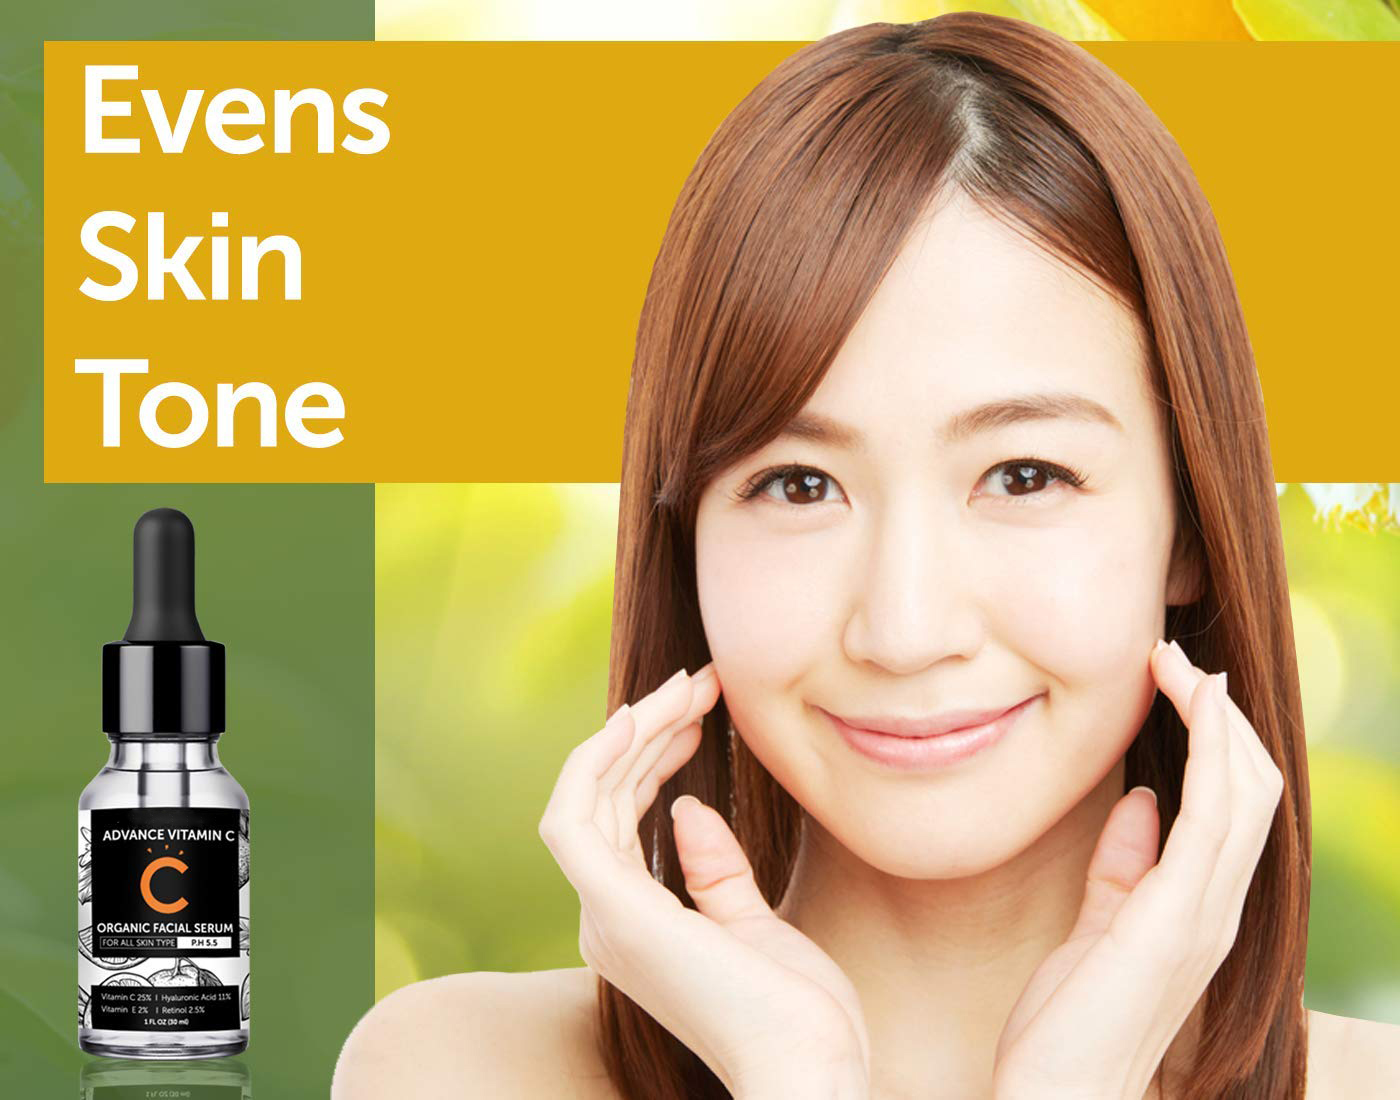 Hight Quality Vitamin C Serum for Face With Hyaluronic Acid, Retinol, Vitamin E